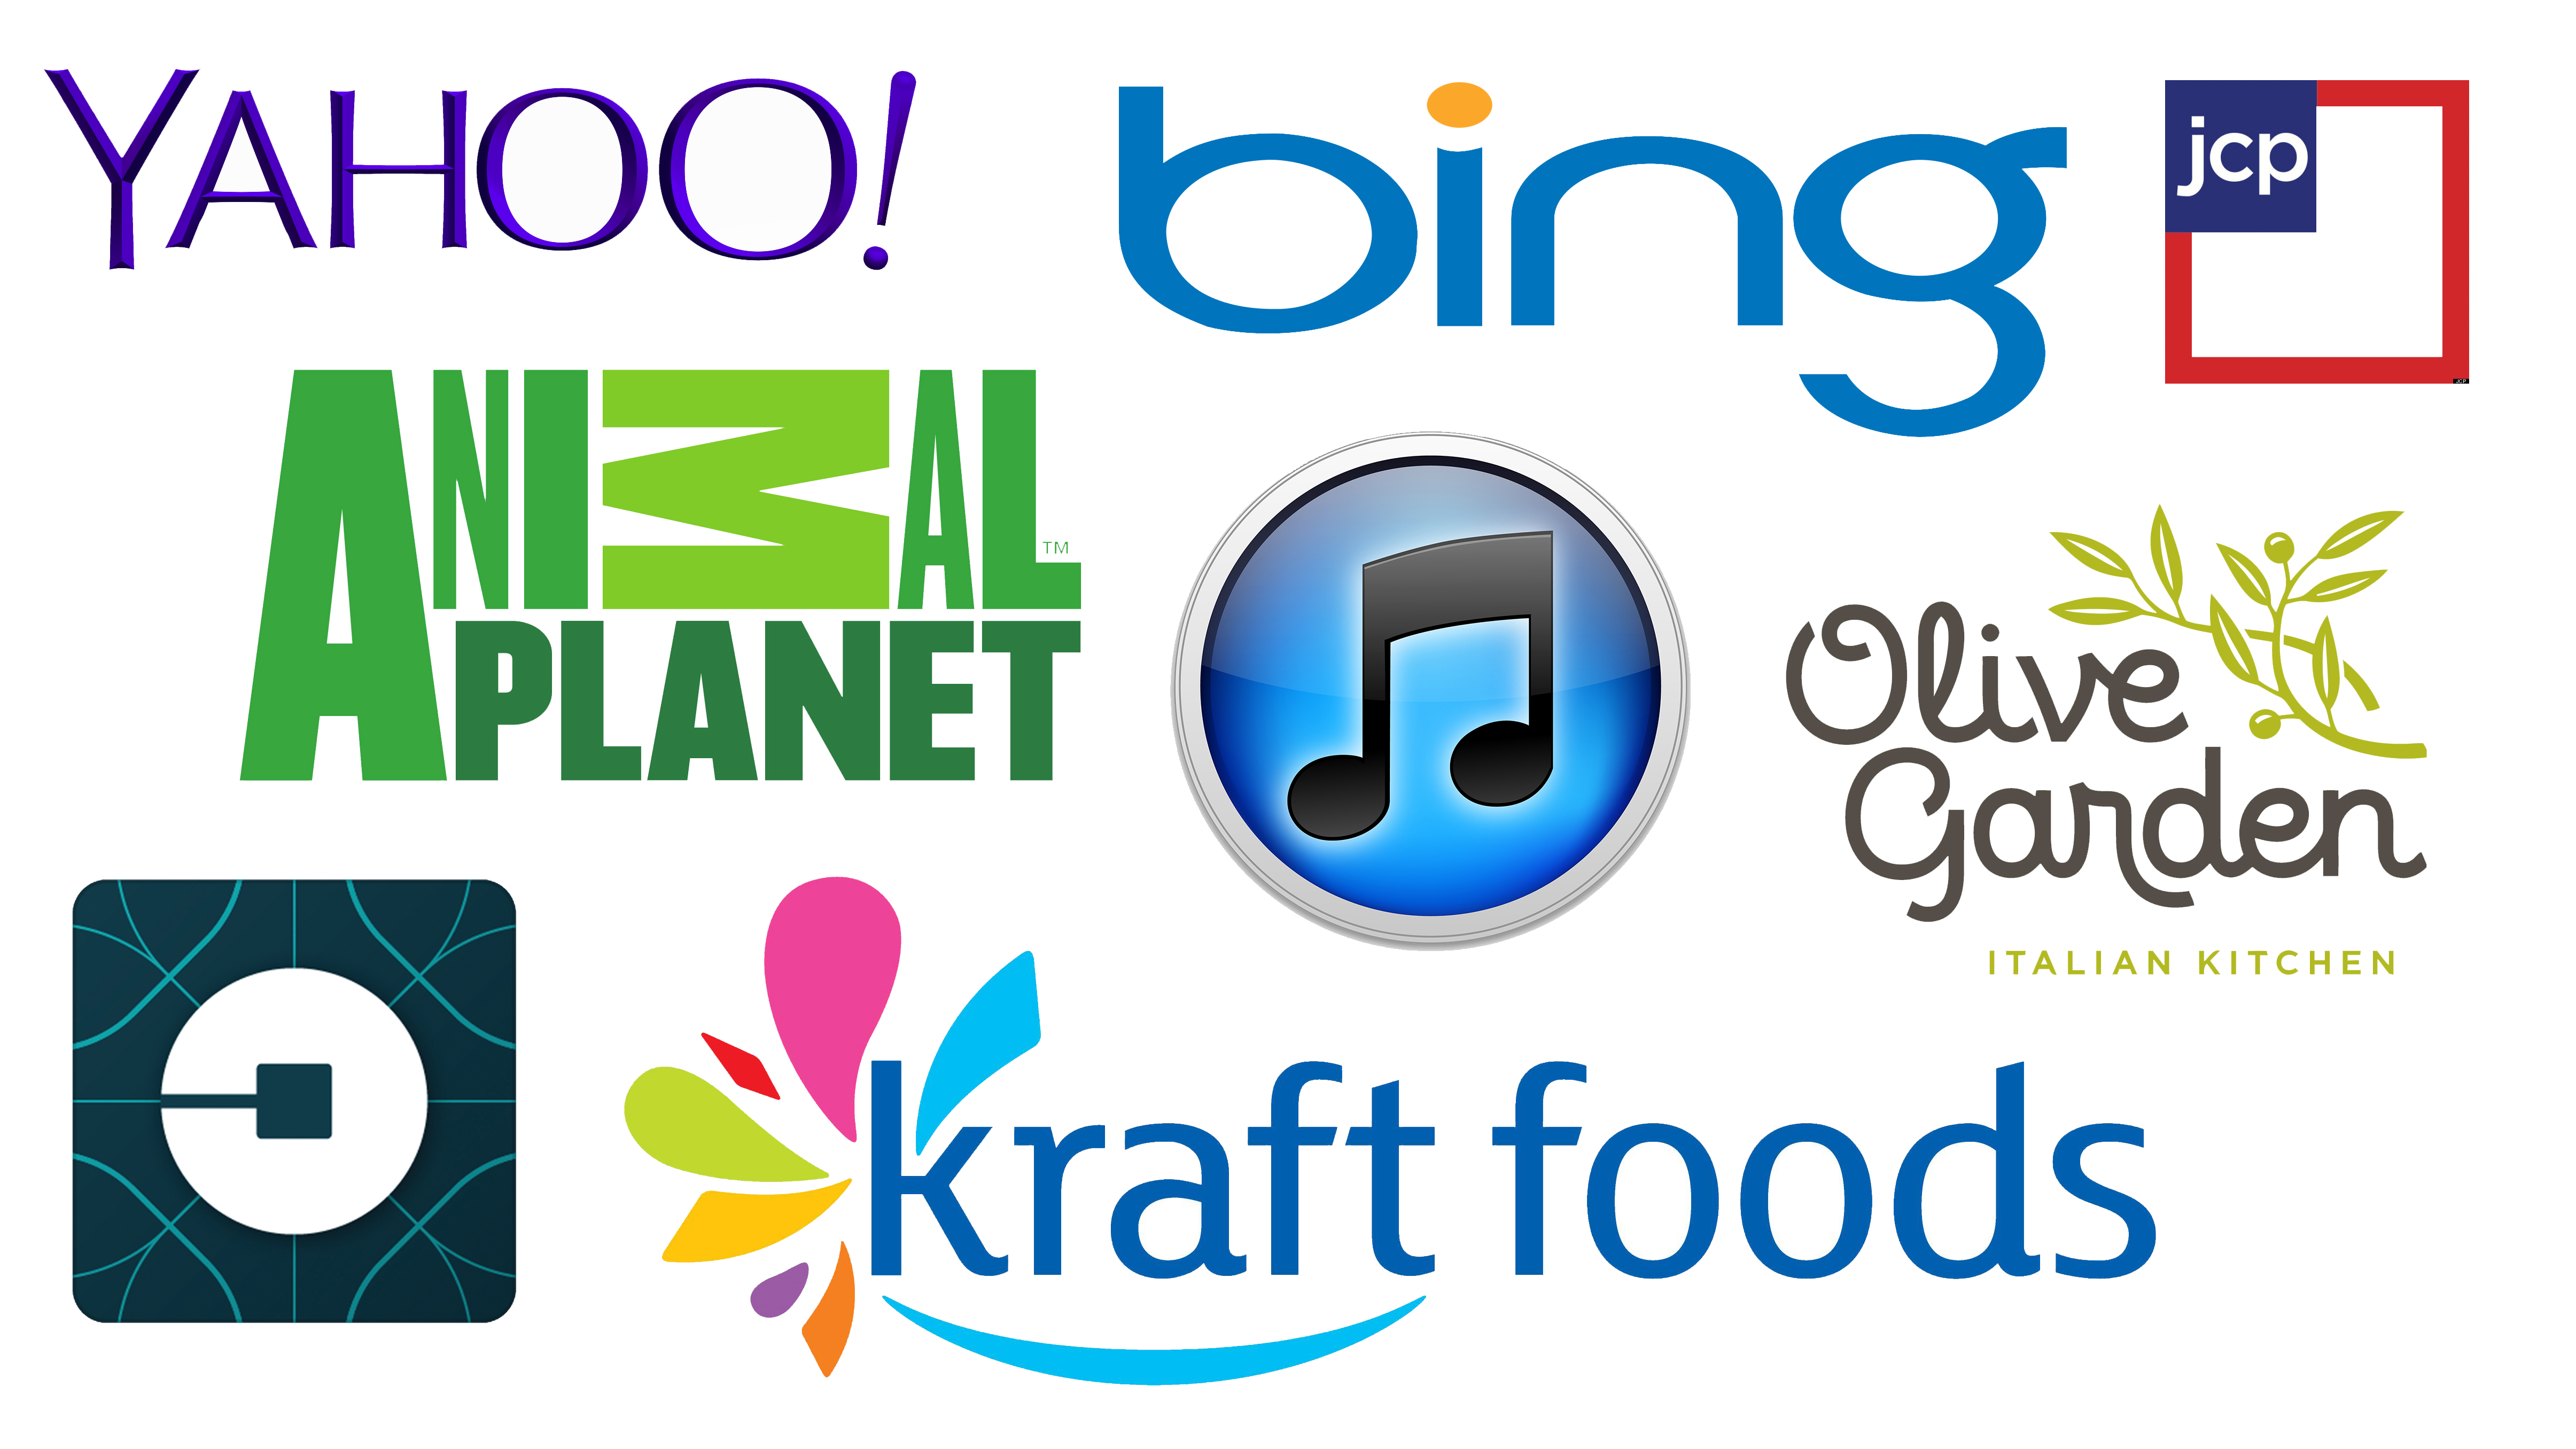 7 logos we all love to hate (and lessons we can learn)